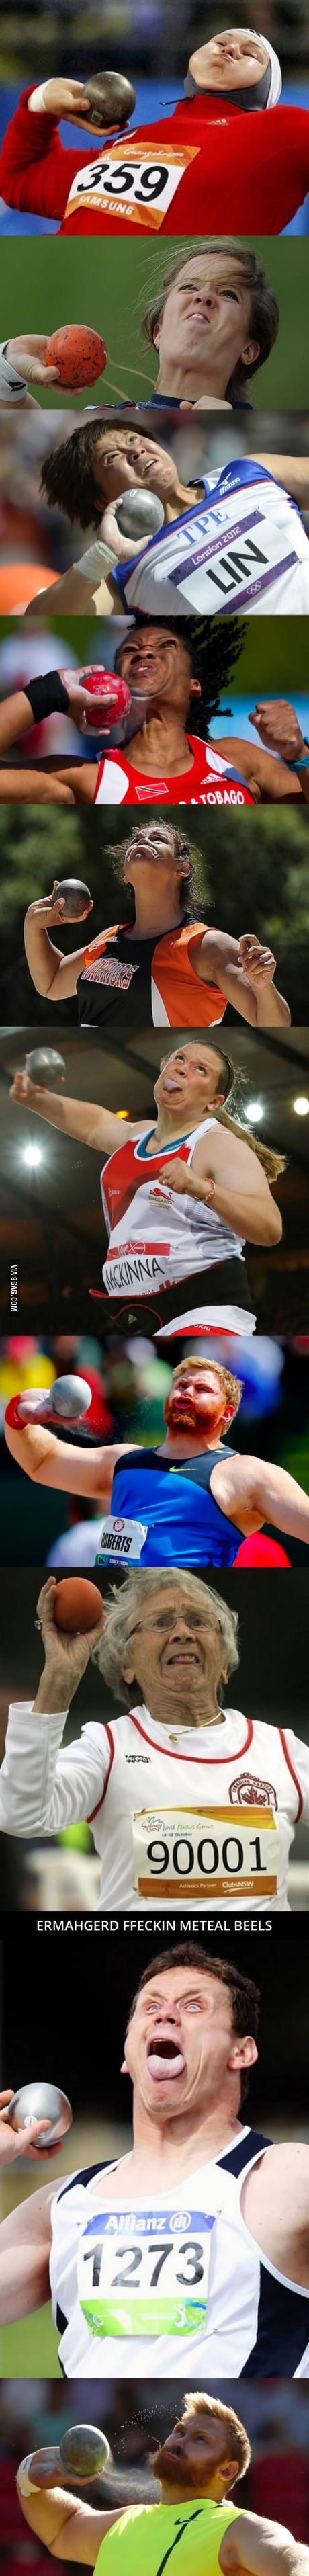 Have you guys heard about shot put faces?